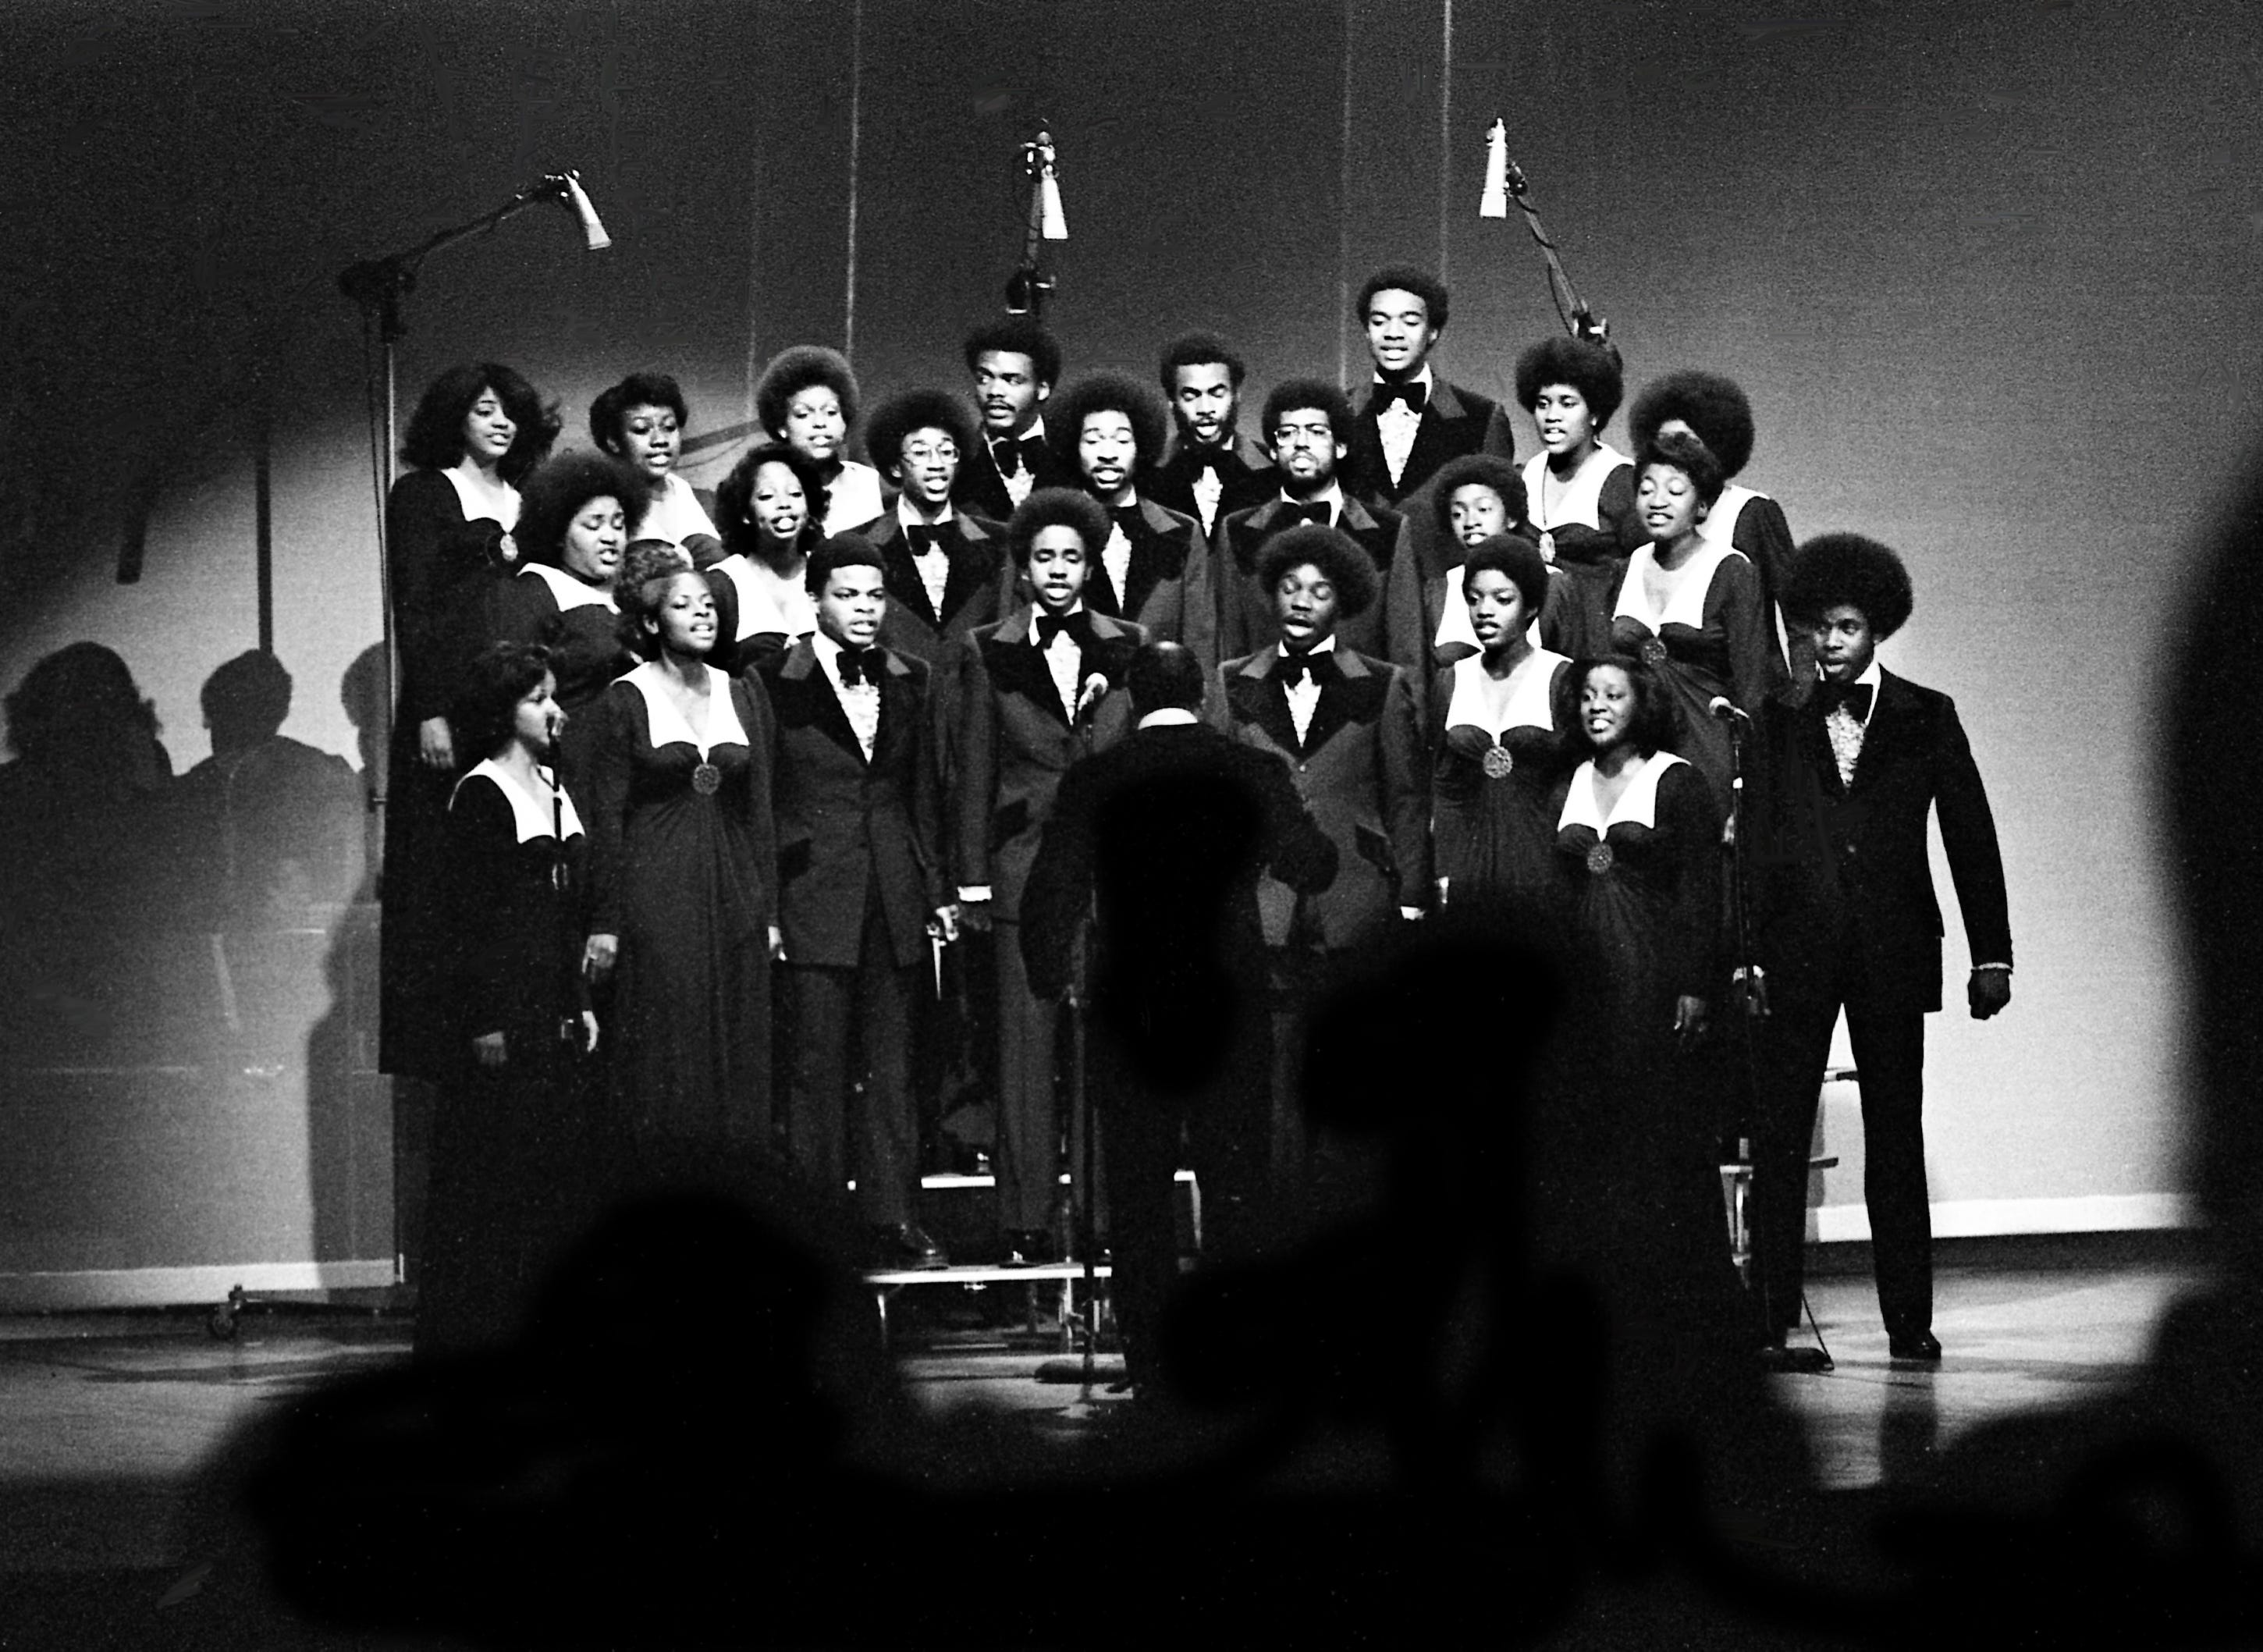 The Jubilee Singers of Fisk University perform during taping of a special production on stage of the Grand Ole Opry House April 23, 1975. The taping will be edited into a half-hour nationwide television special sponsored by the Carnation Milk Co. and set for airing in the summer.